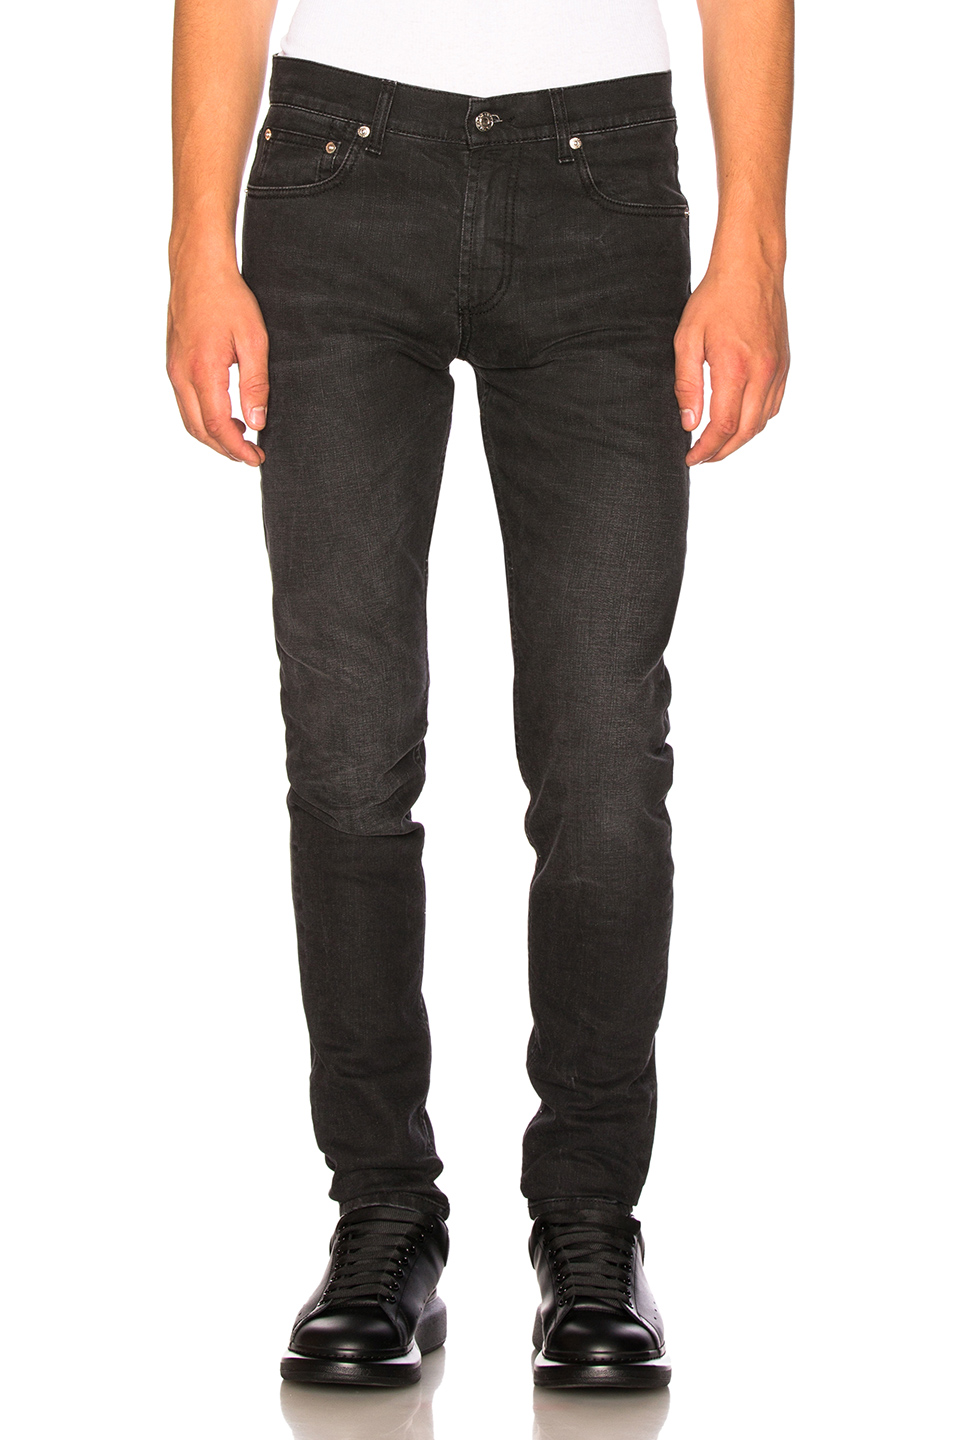 Alexander McQueen Fitted Jeans in Black